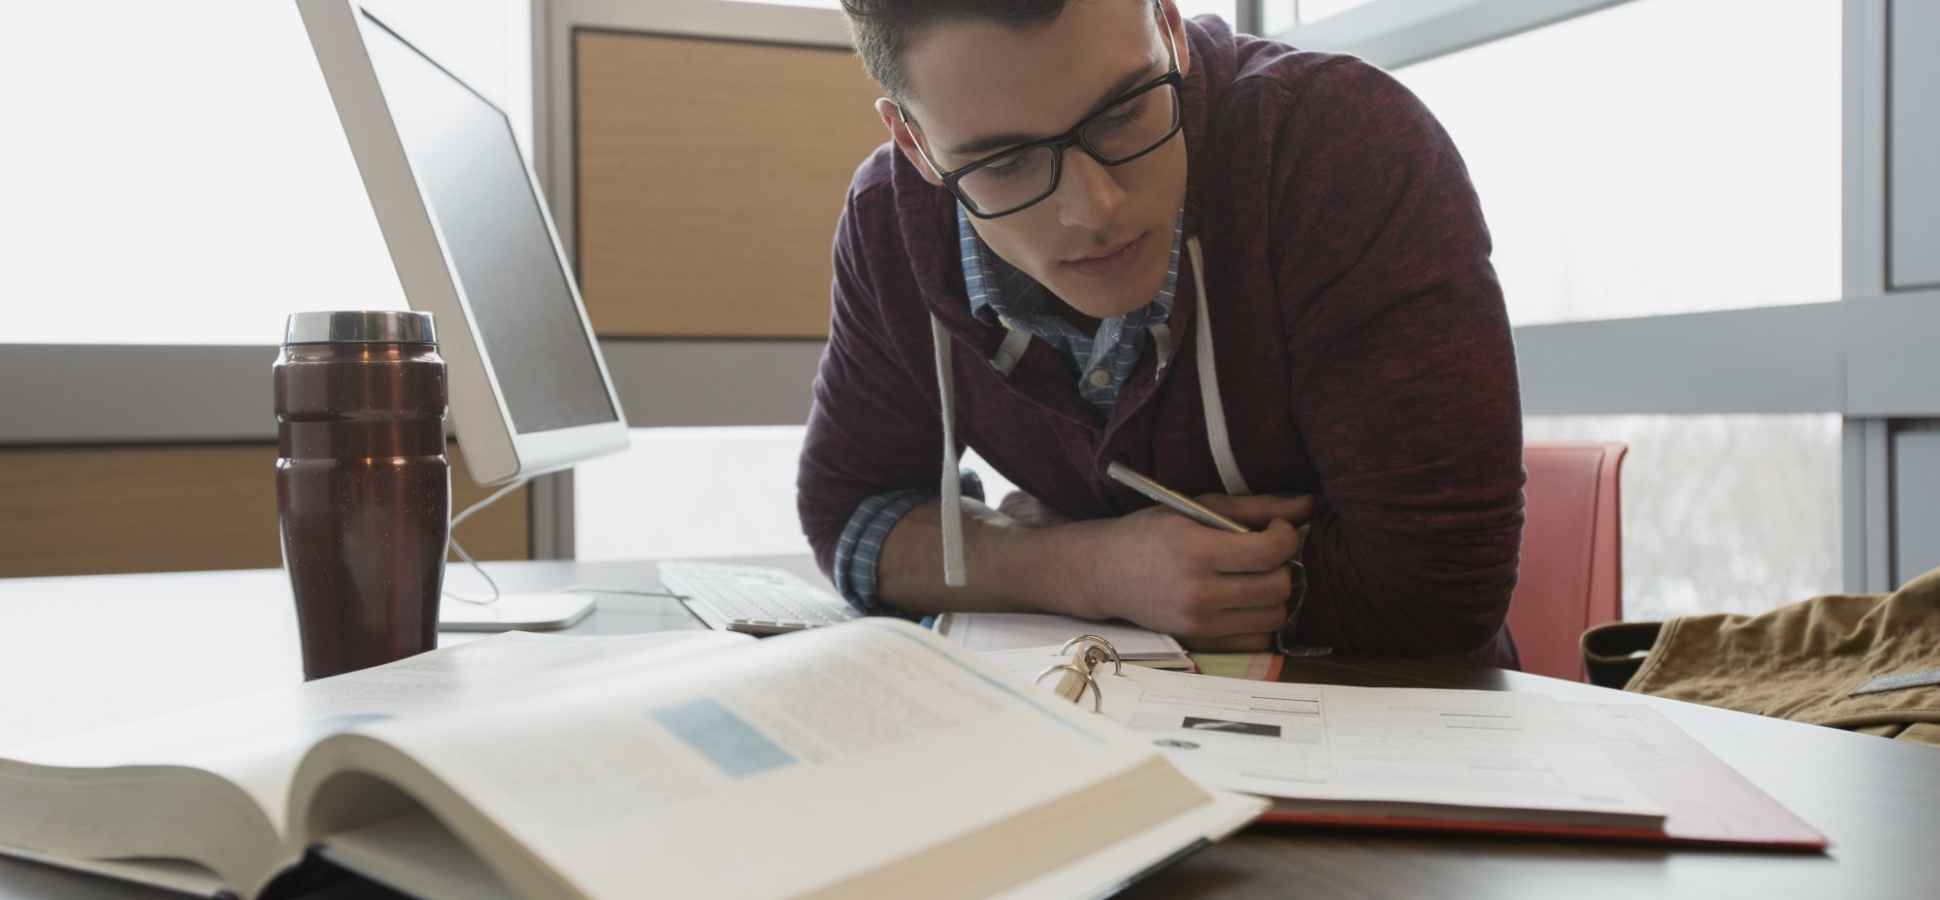 10 Online Classes Every Entrepreneur Should Take Before Starting a Business